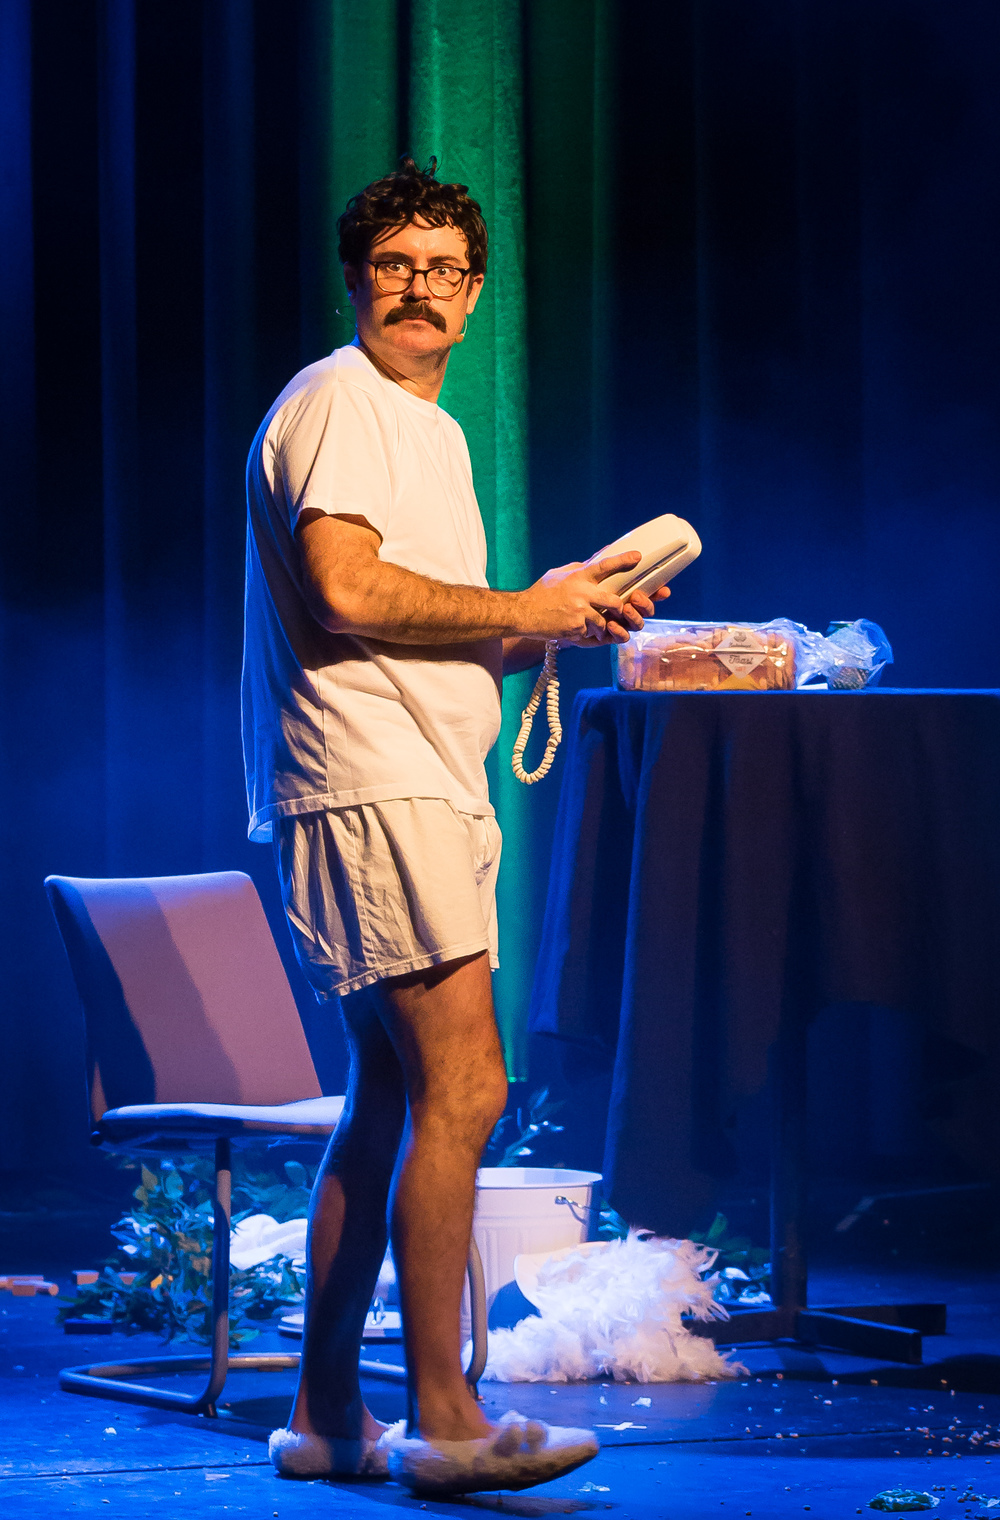 Australian Sam Simmons performing the award winning show 'Spaghetti for Breakfast'.